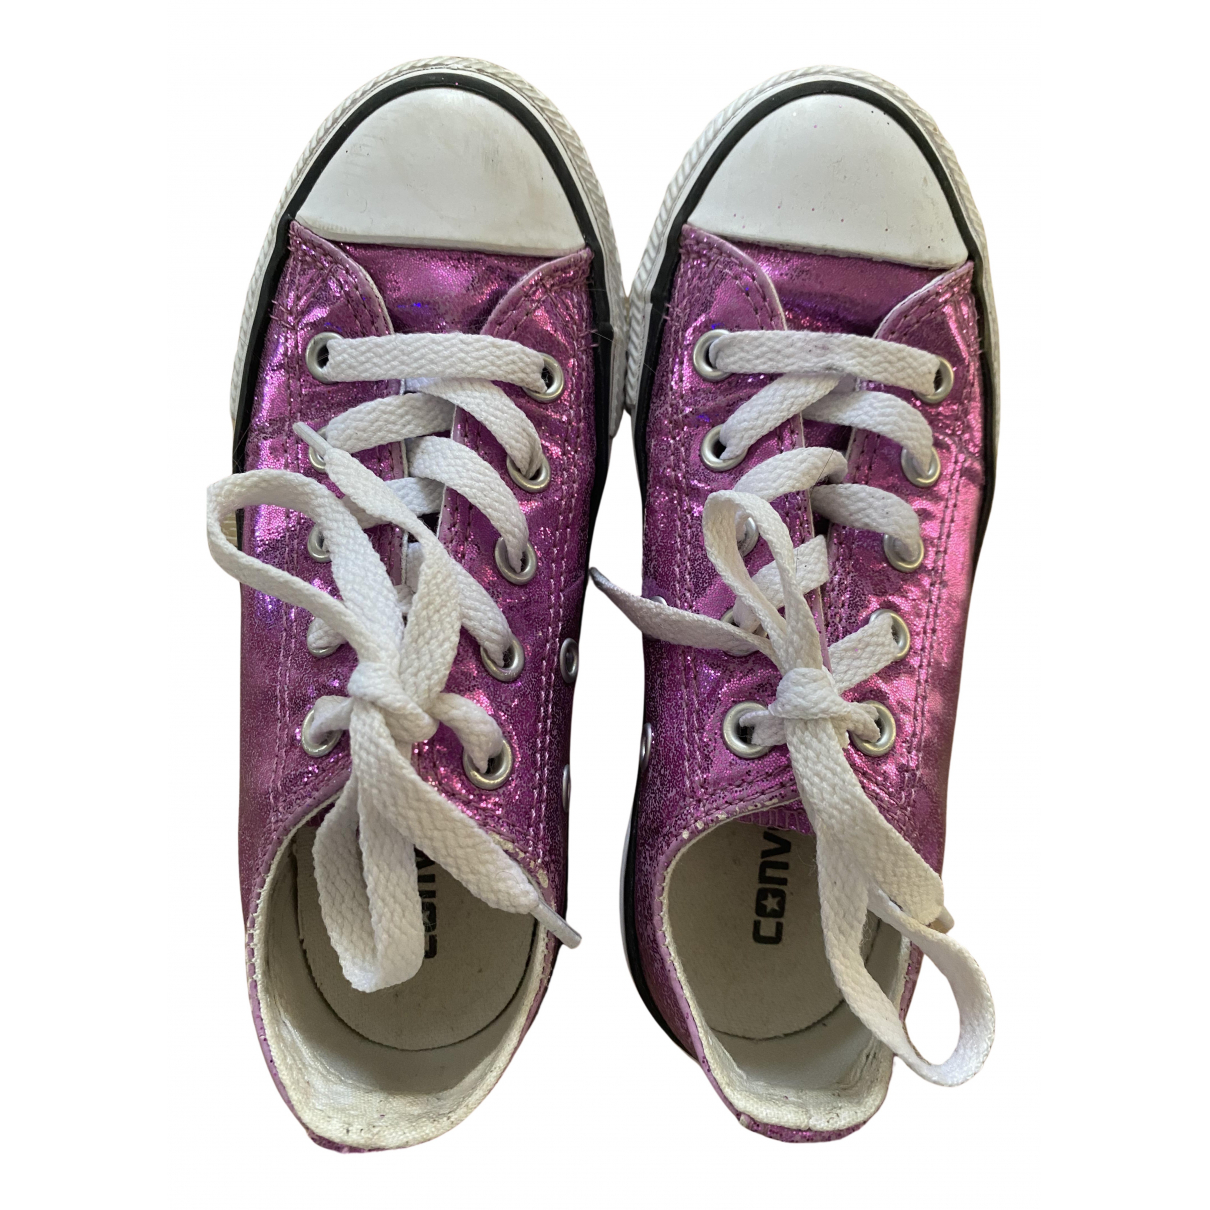 Converse N Purple Cloth Trainers for Kids 28 FR